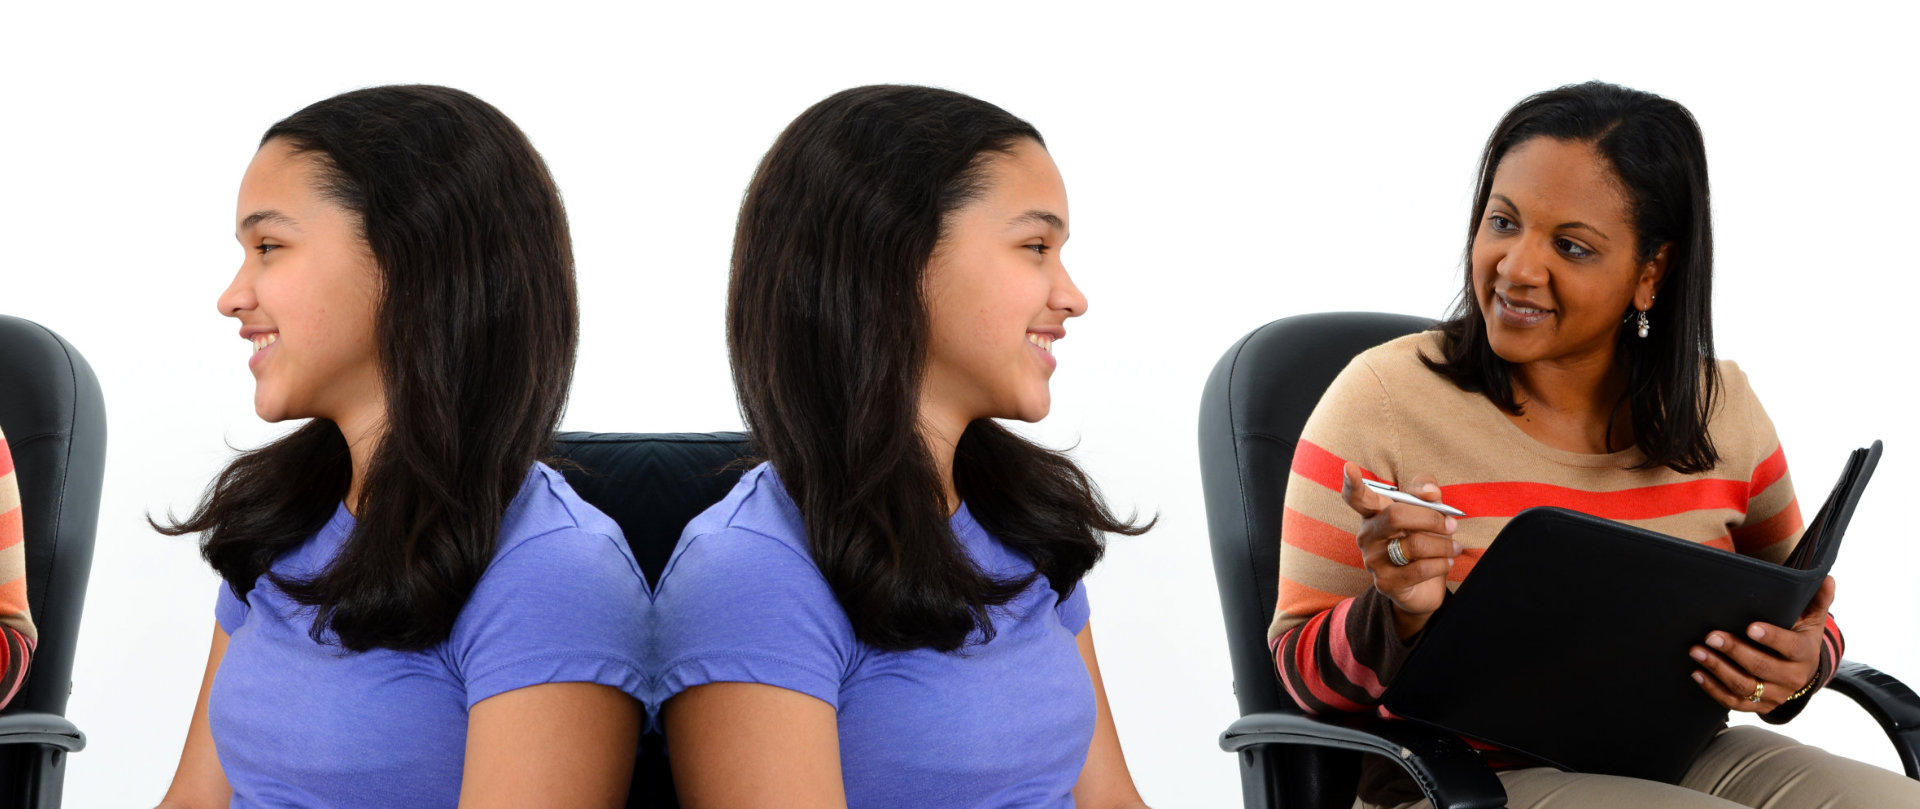 counselor talking to a young woman